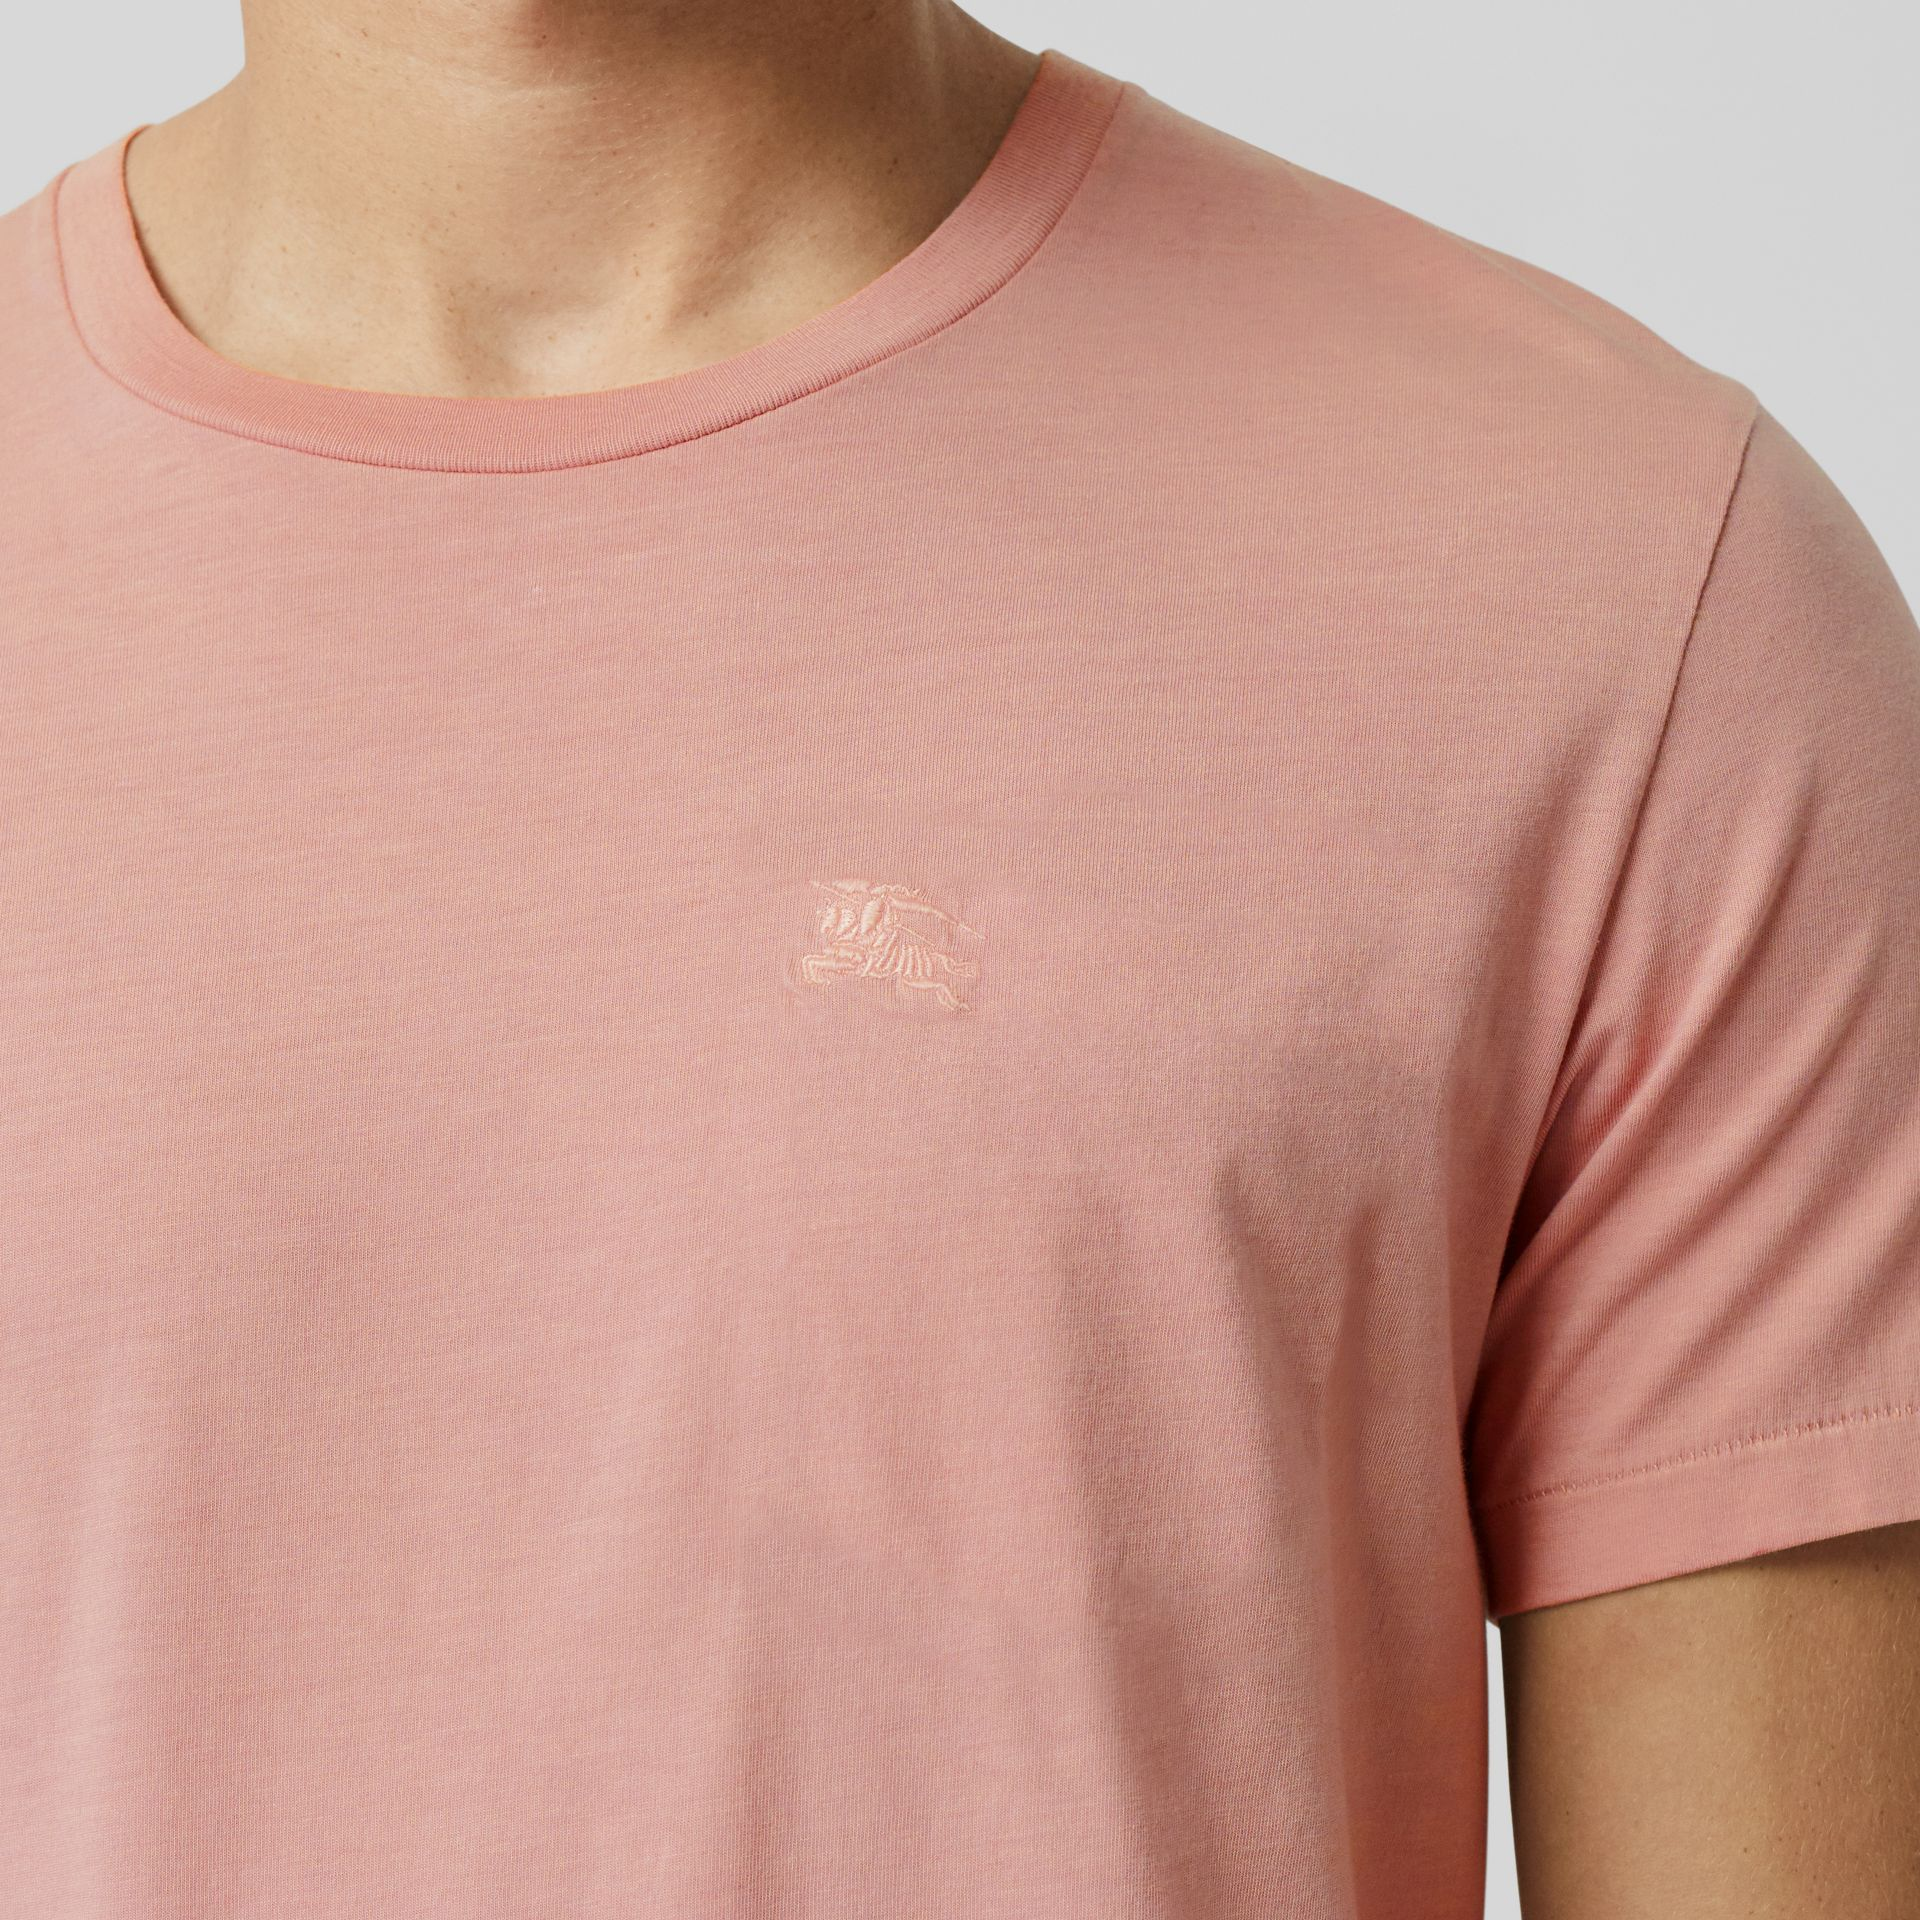 Cotton T-shirt in Chalk Pink - Men | Burberry Australia - gallery image 1